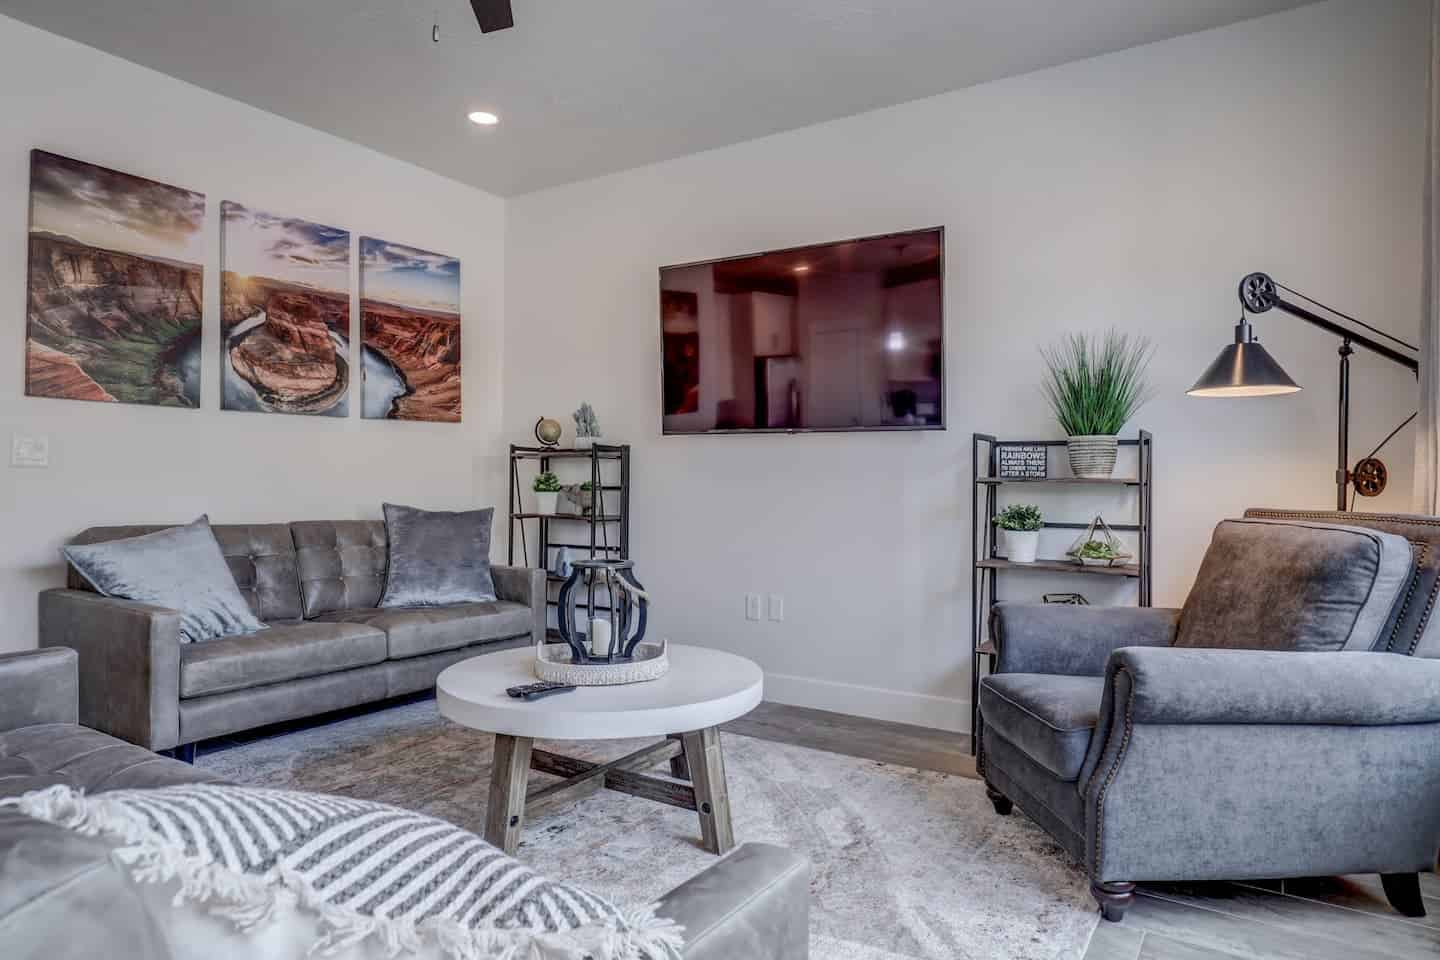 Image of Airbnb rental in St. George, Utah